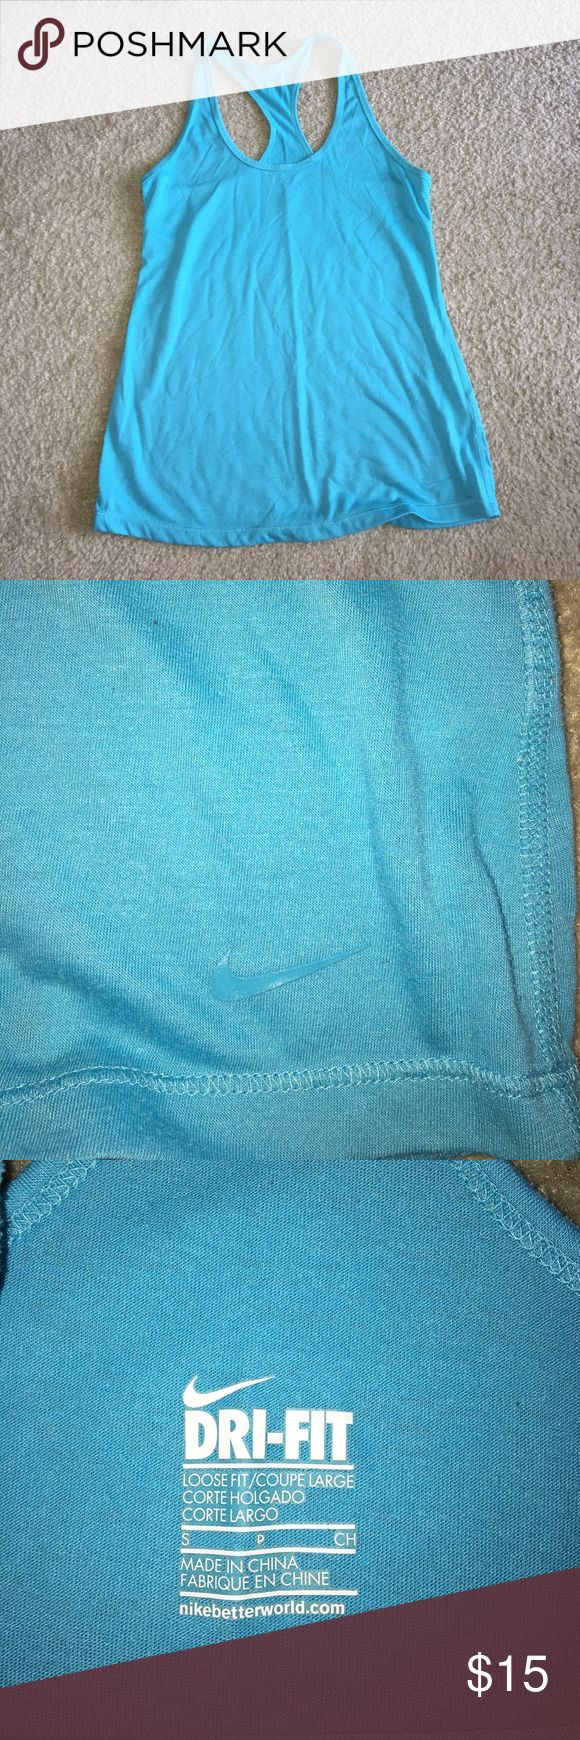 Tiffany blue Nike Racer Back tank Good used condition Nike Tiffany blue racer back tank - some pilling but overall good. Size S. Nike Tops Tank Tops